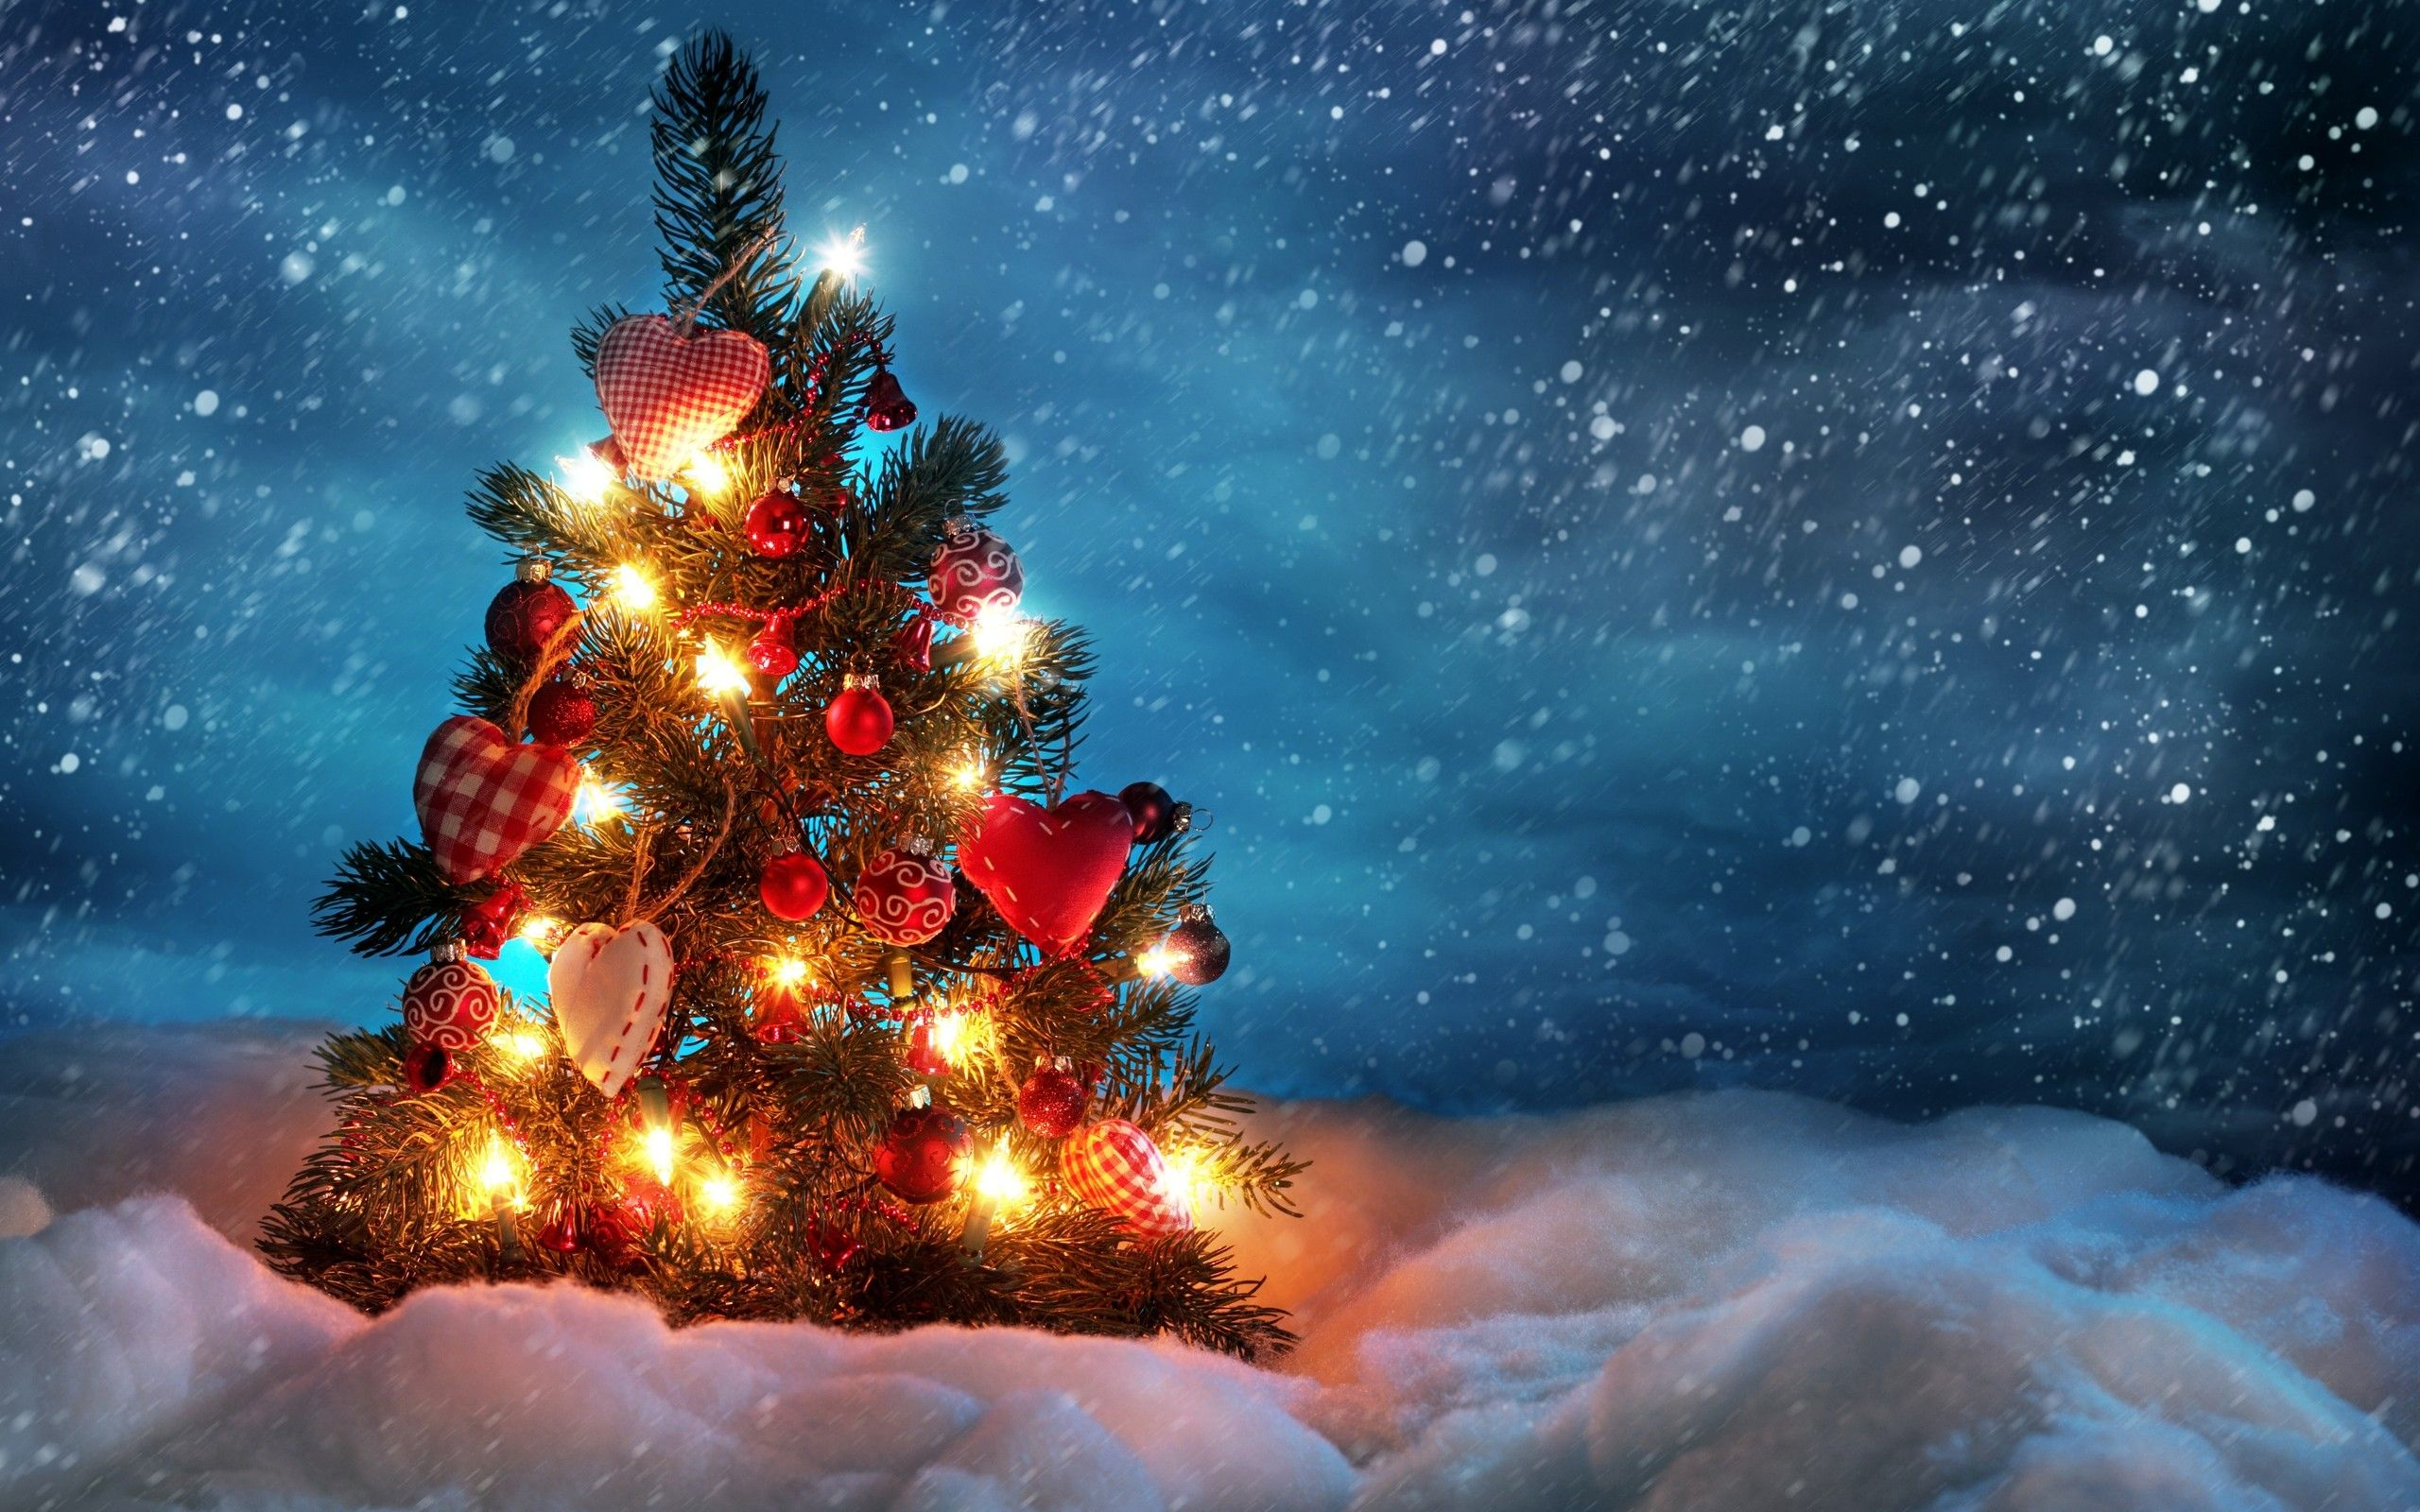 Christmas Hd Wallpapers Free Download Gambar Natal Selamat Natal Pohon Natal